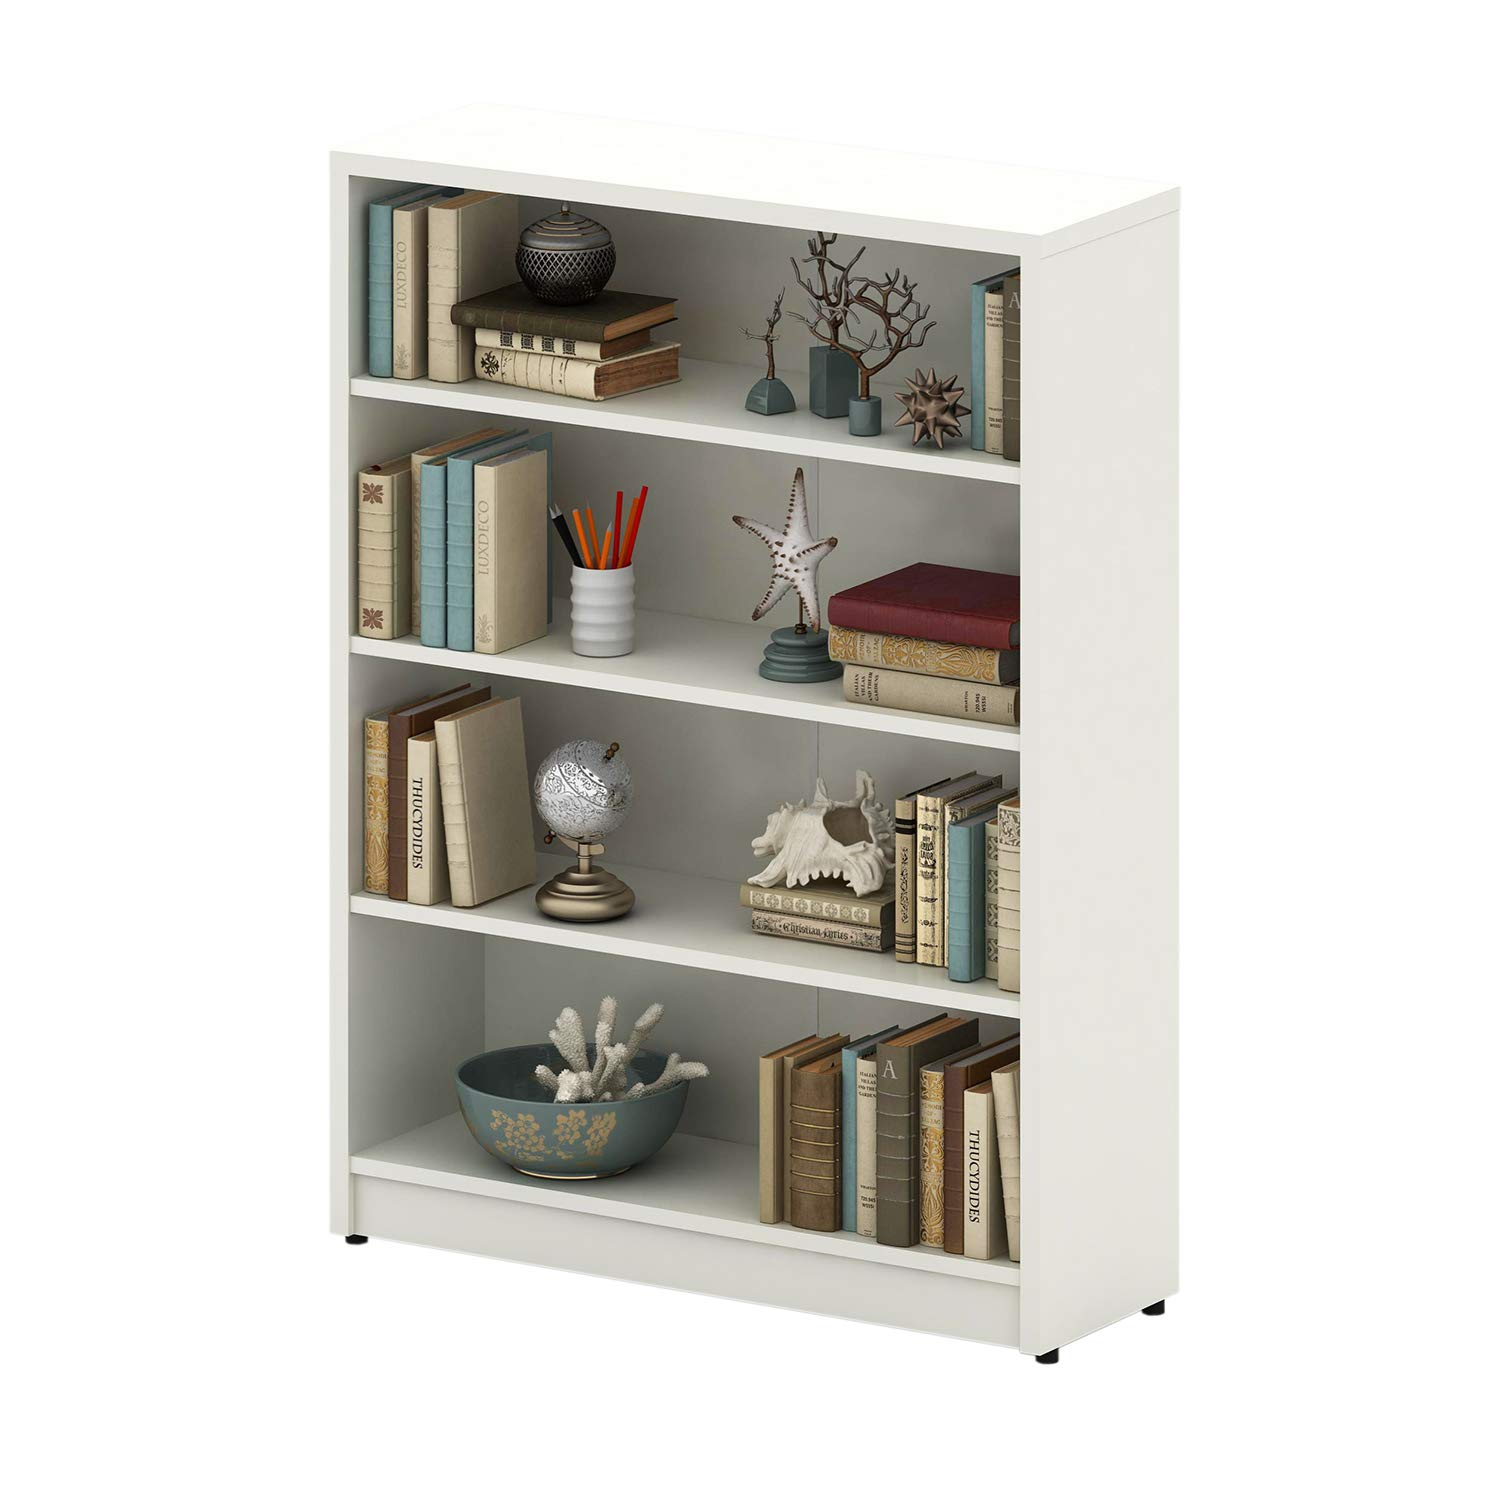 4-Tier, Mahogany Sunon Collection Wood Bookcase Freestanding Display Shelf for Home and Office